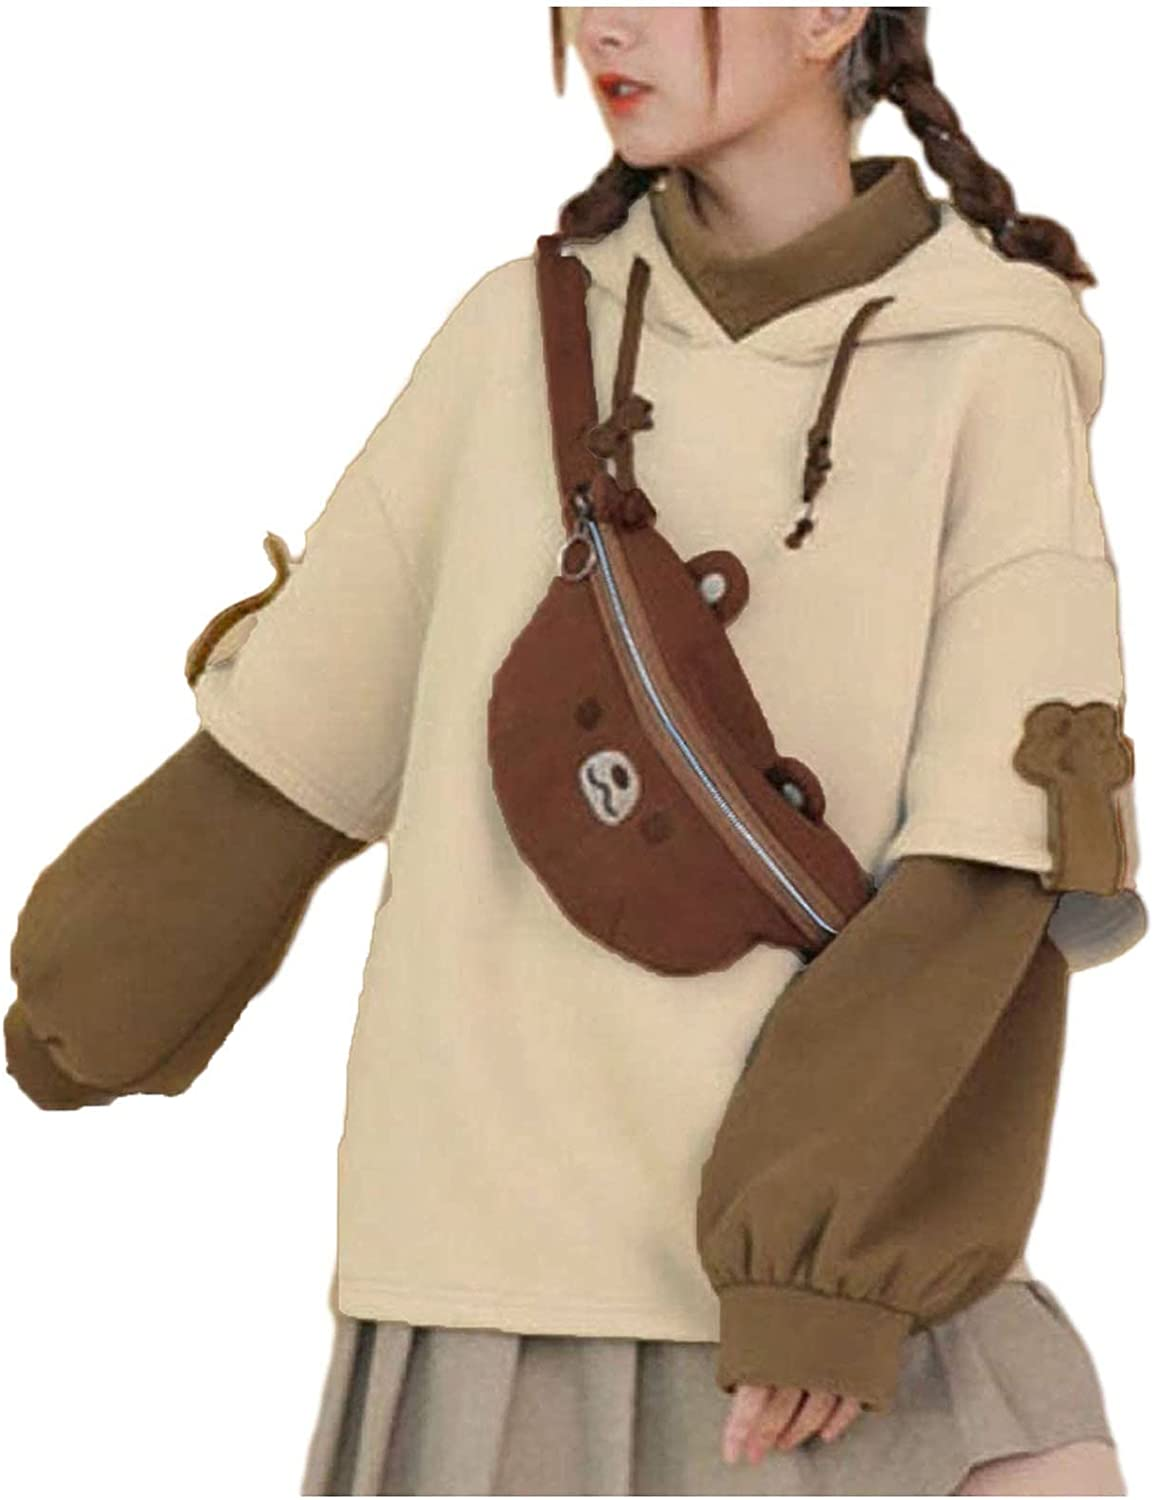 BOXIACEY Woman's Brown Bear Hoodies Autumn Winter Long Sleeve Sweatshirt Matching Personality Bag Hooded Pullover